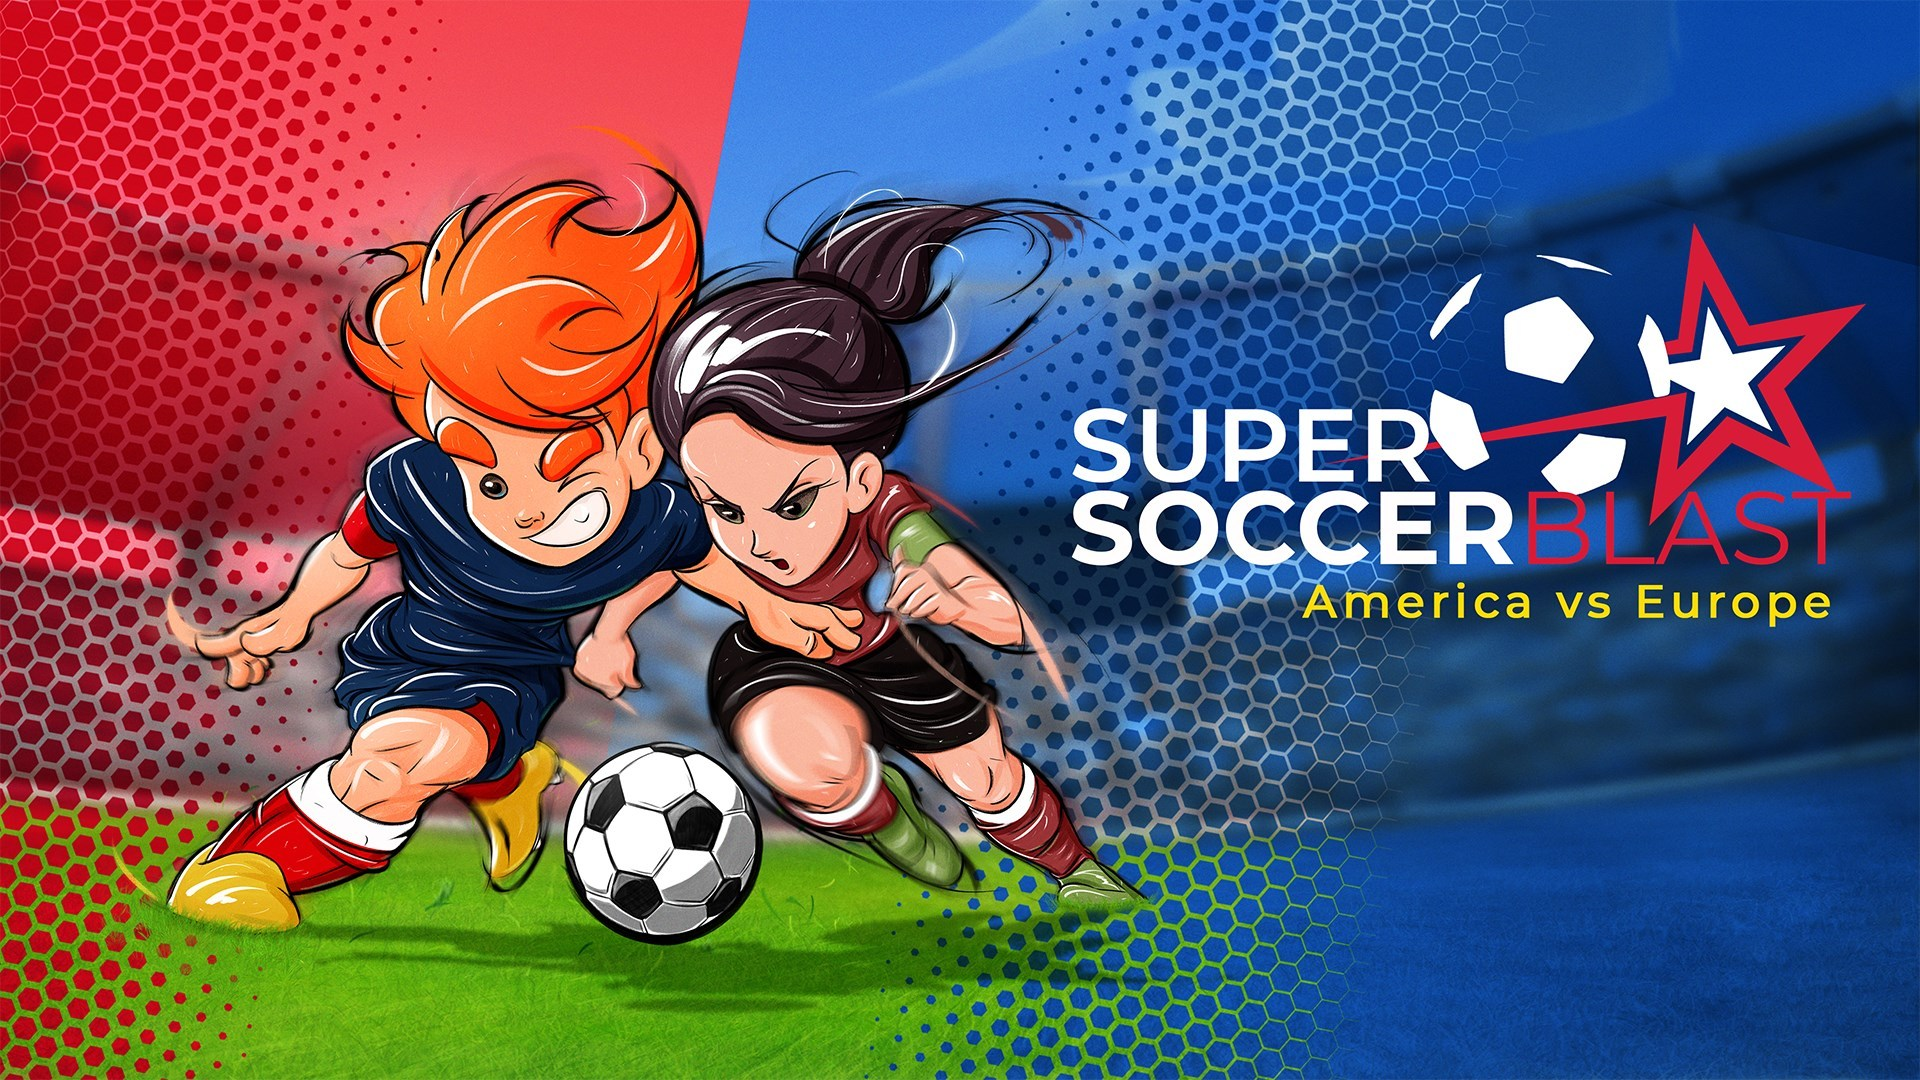 Super Soccer Blast: America vs Europe Is Now Available For Xbox One And Xbox Series X|S 1